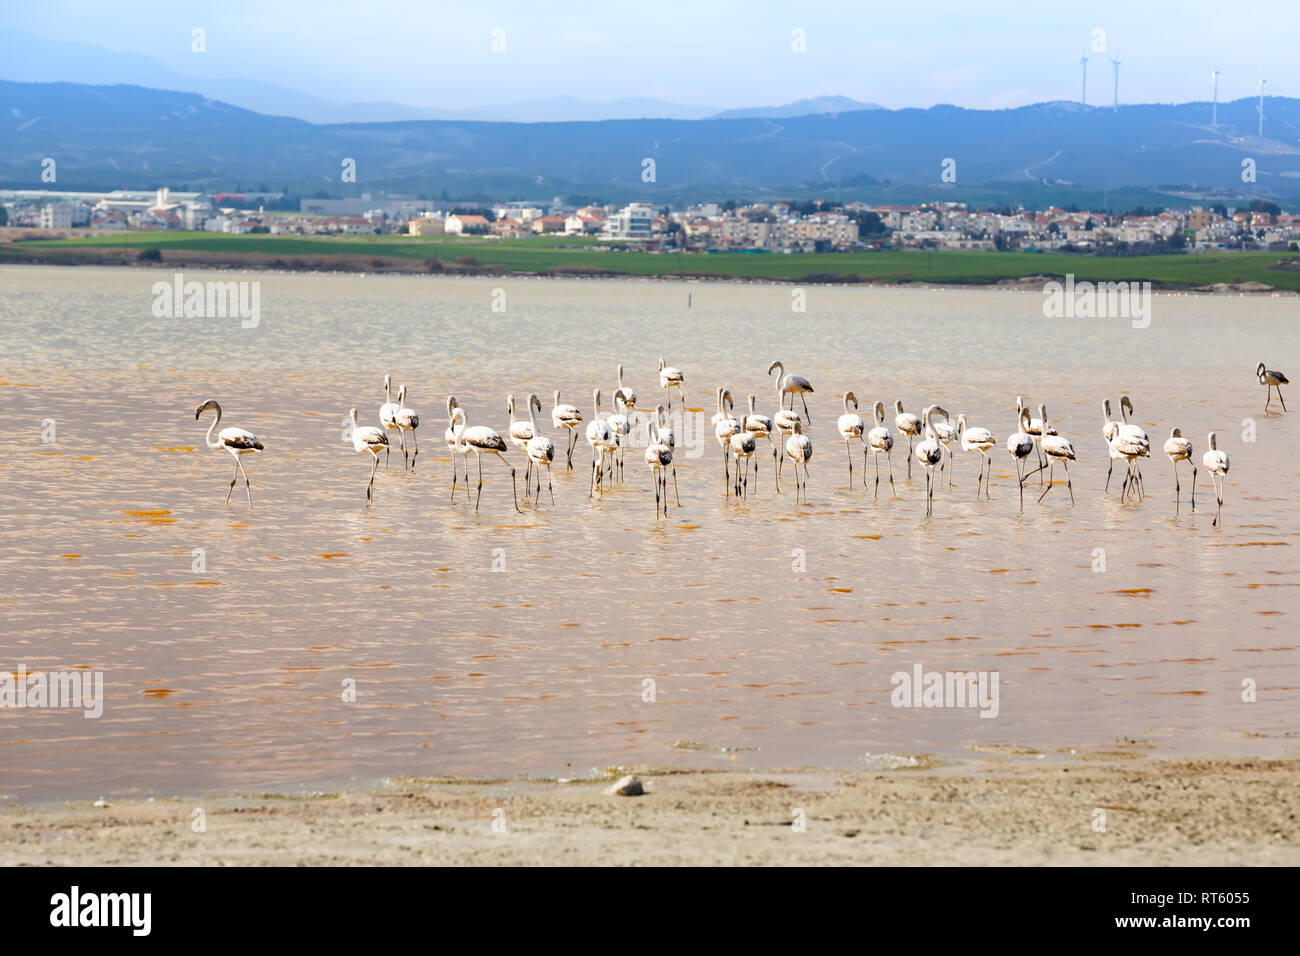 Group of flamingos at the Salk lake in Larnaca, Cyprus. Stock Photo